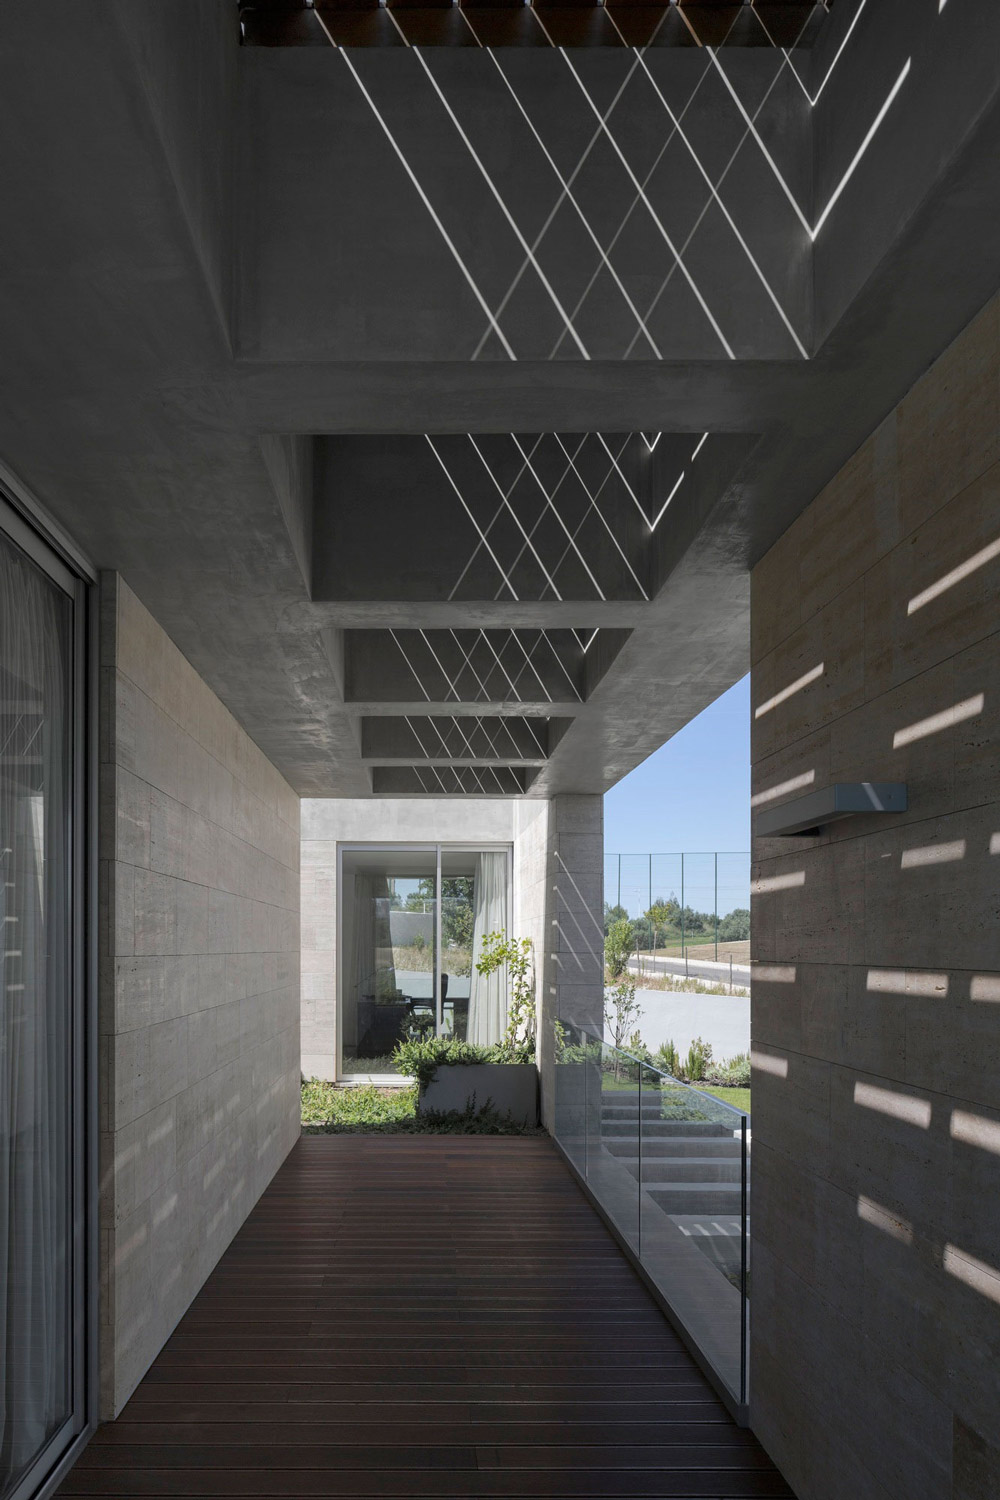 Patio, Wood Flooring, C+P House in Lisbon, Portugal by Gonçalo das Neves Nunes